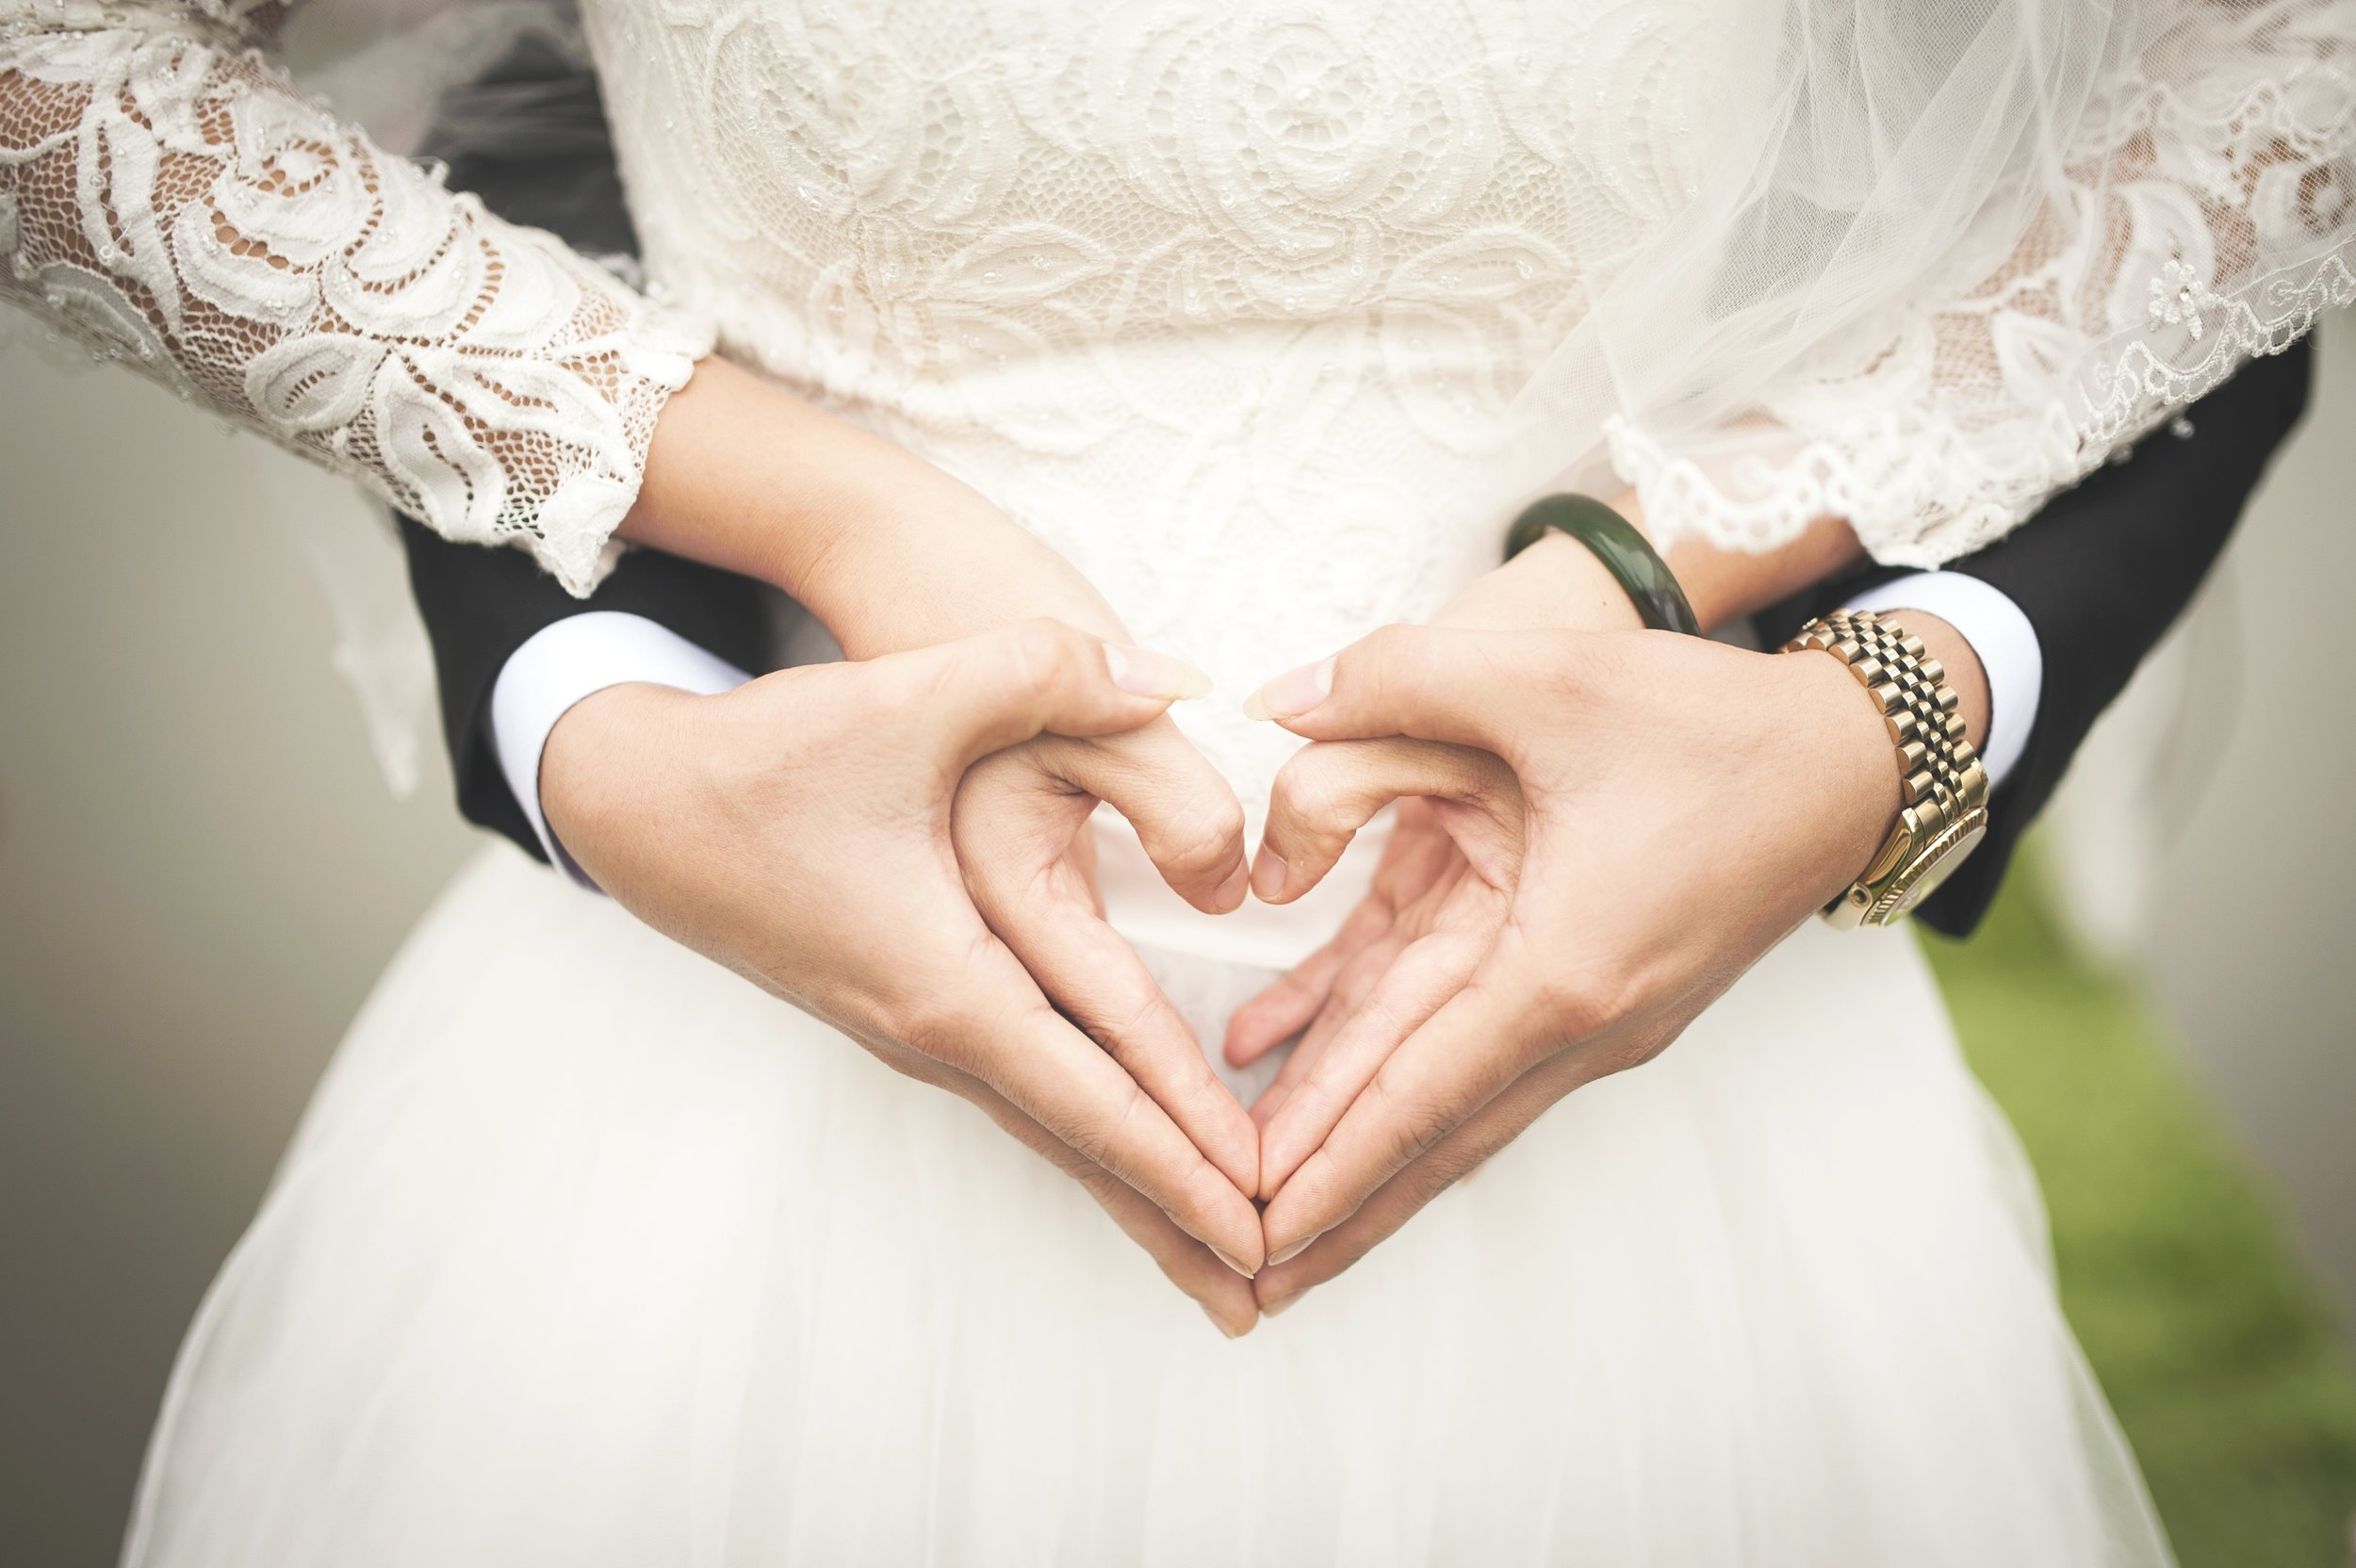 WEDDING PHOTO AND VIDEO $2900 - STAFF OF 4/ 10-12 HOURS OF COVERAGE